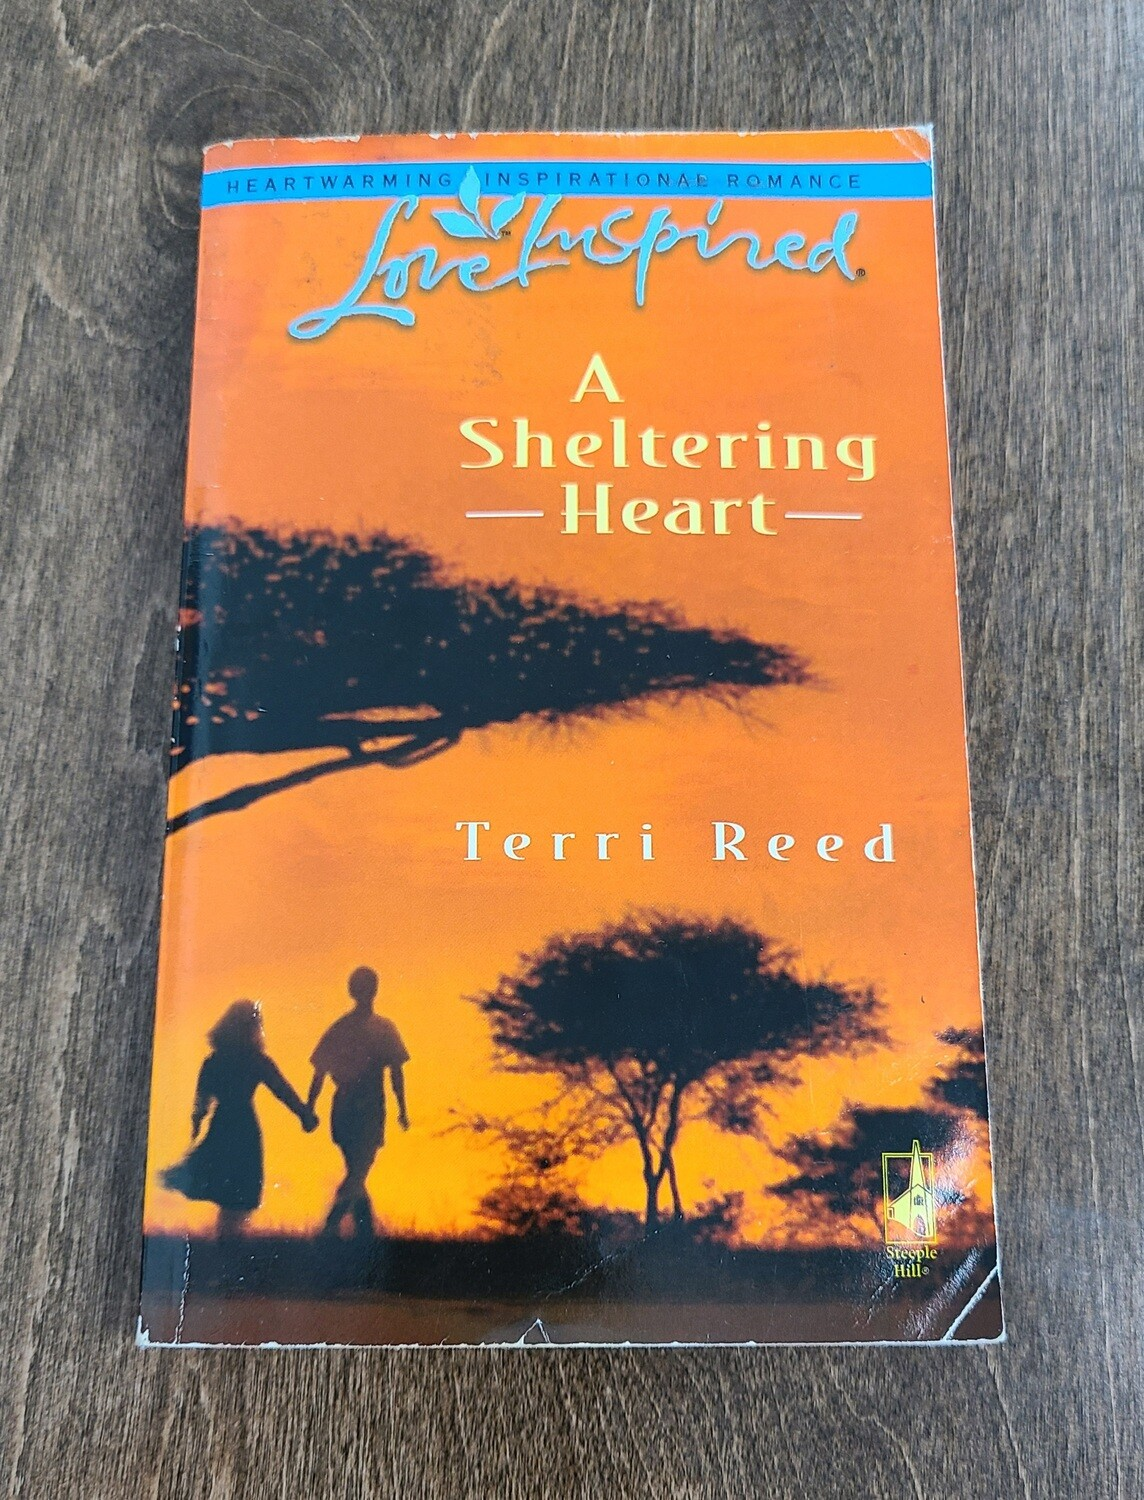 A Sheltering Heart by Terri Reed